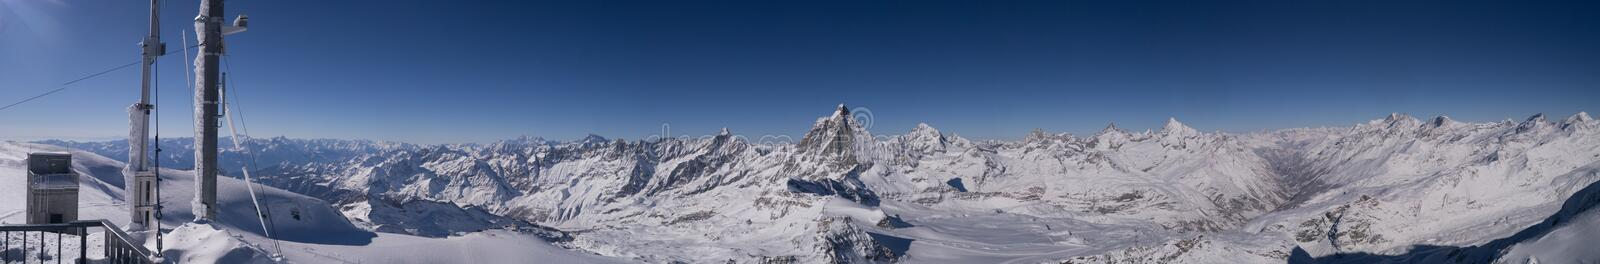 Alpes suisses Matterhorn de paysage photo stock